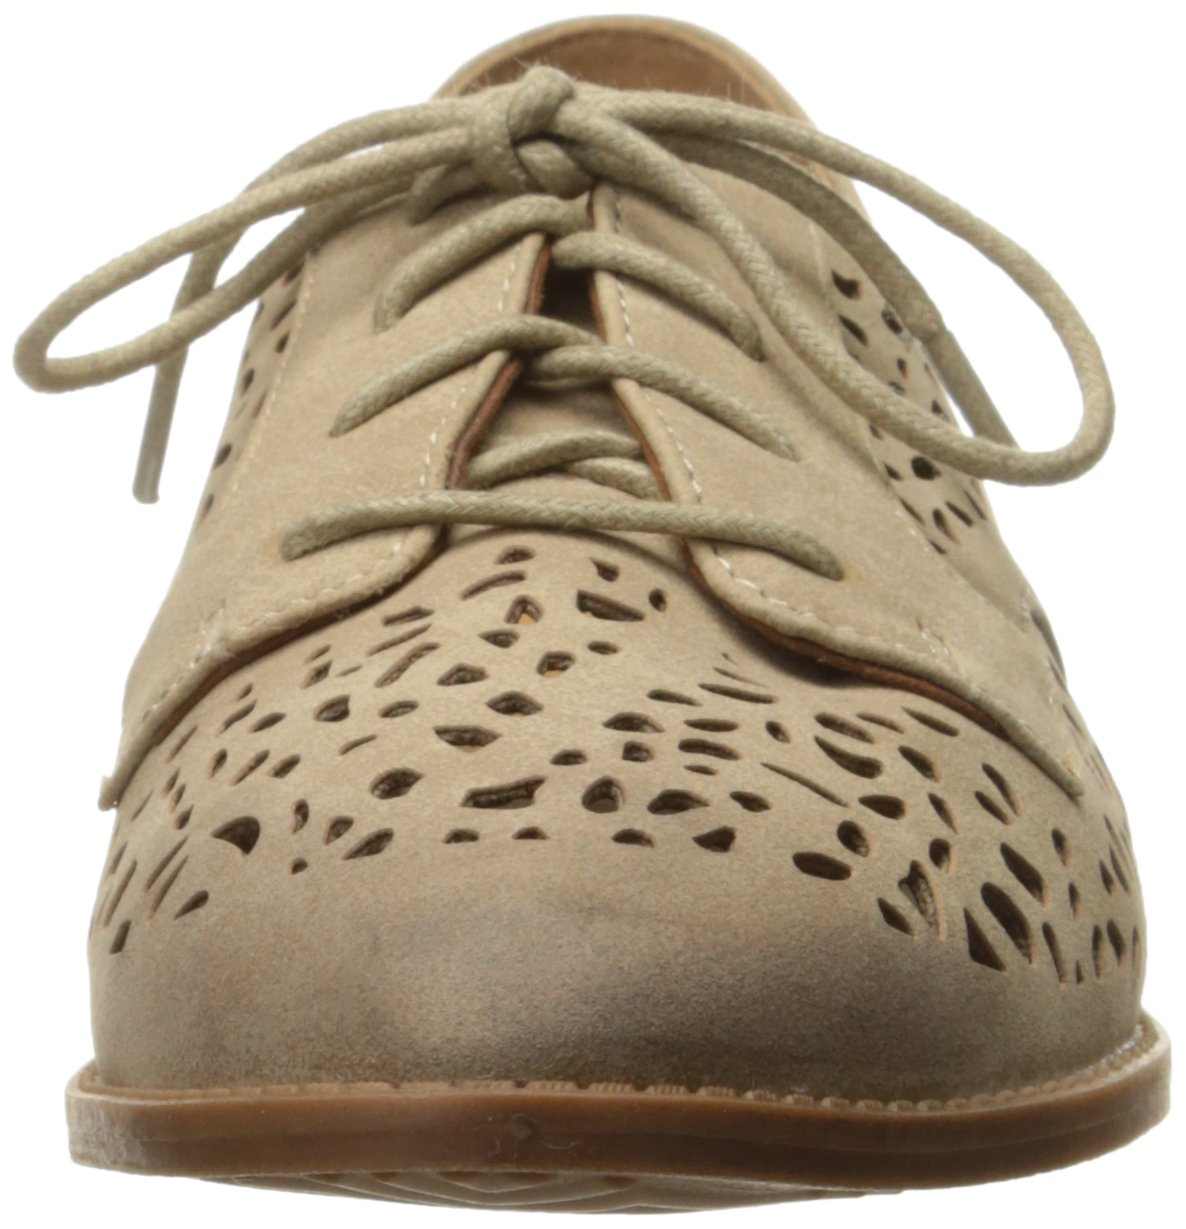 BC Footwear Women's Happy Youre Here Pointed Toe Flat B01MTW82BL 6 B(M) US|Taupe